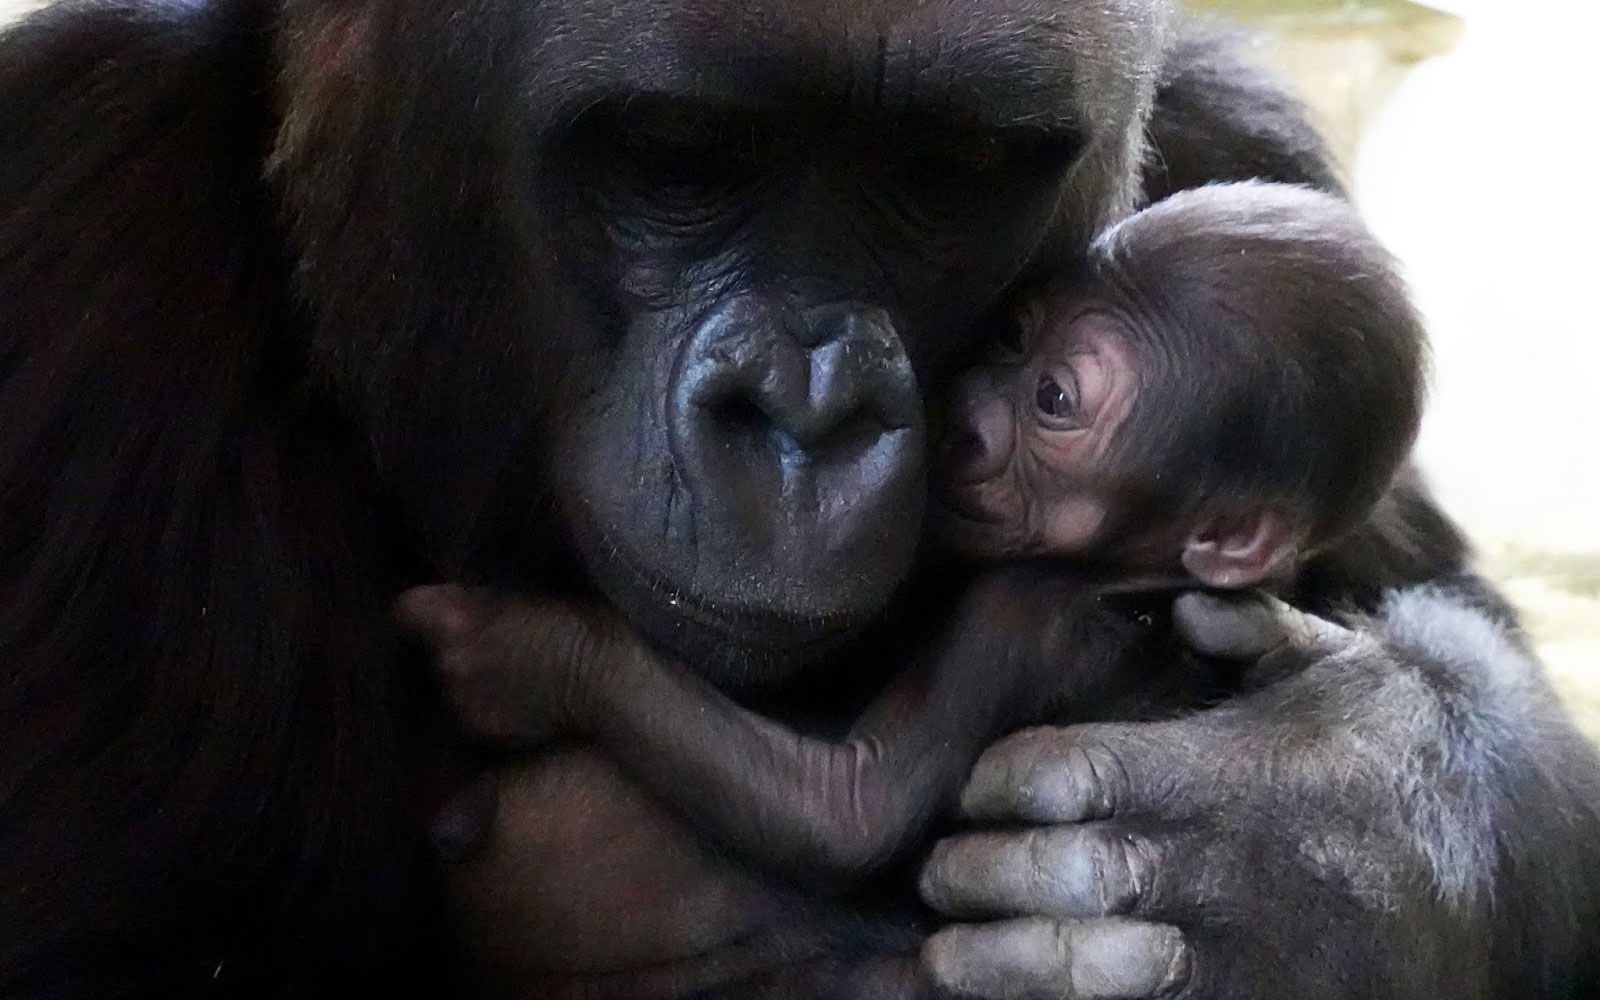 Gorilla Uzumma and baby